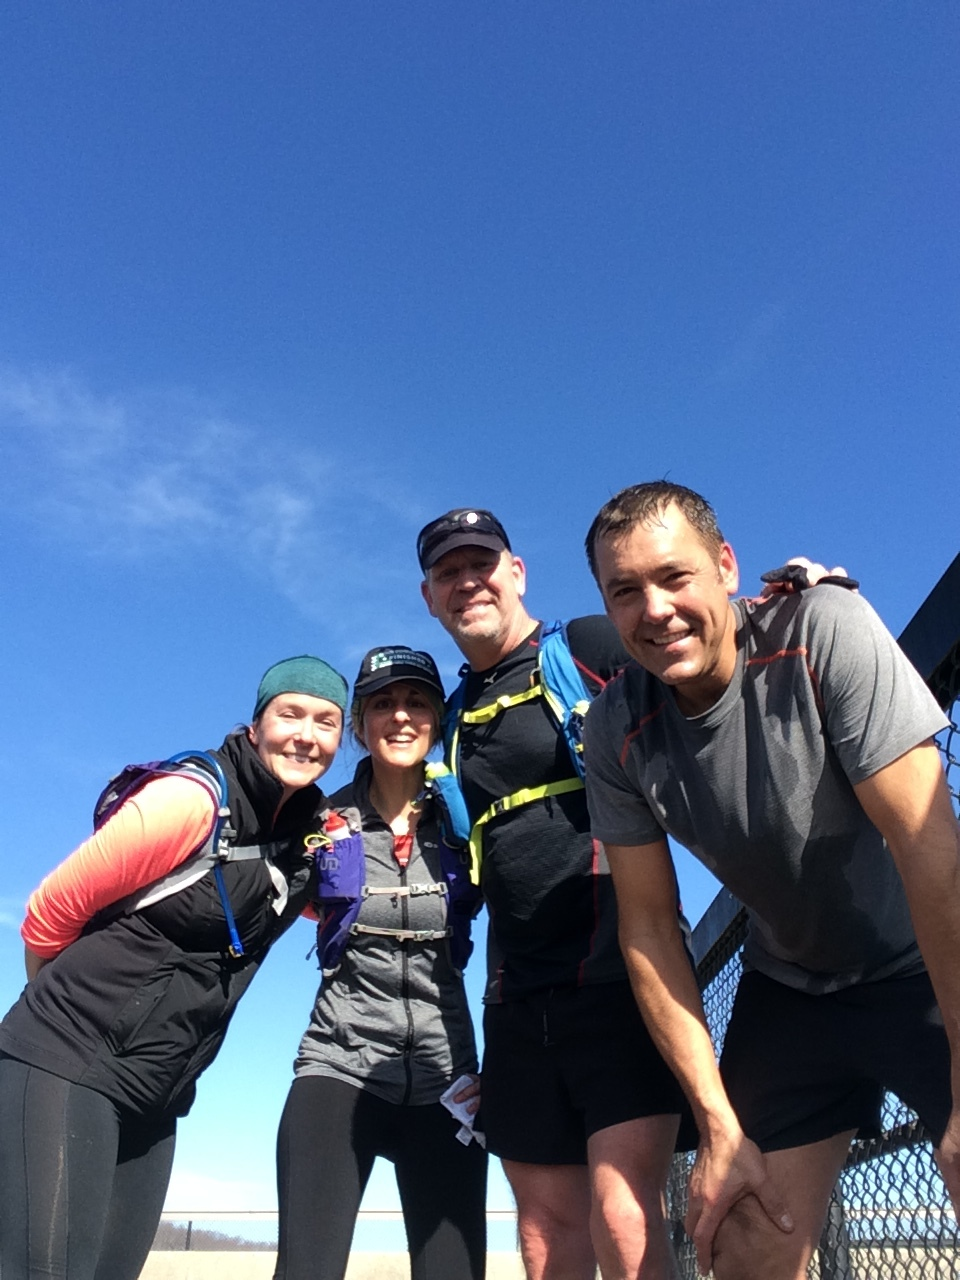 A few of my training pals--Jenny, me, Scott and John--after a particularly tricky trail run that included crawling down the face of a ridiculous hill. Still smiling!